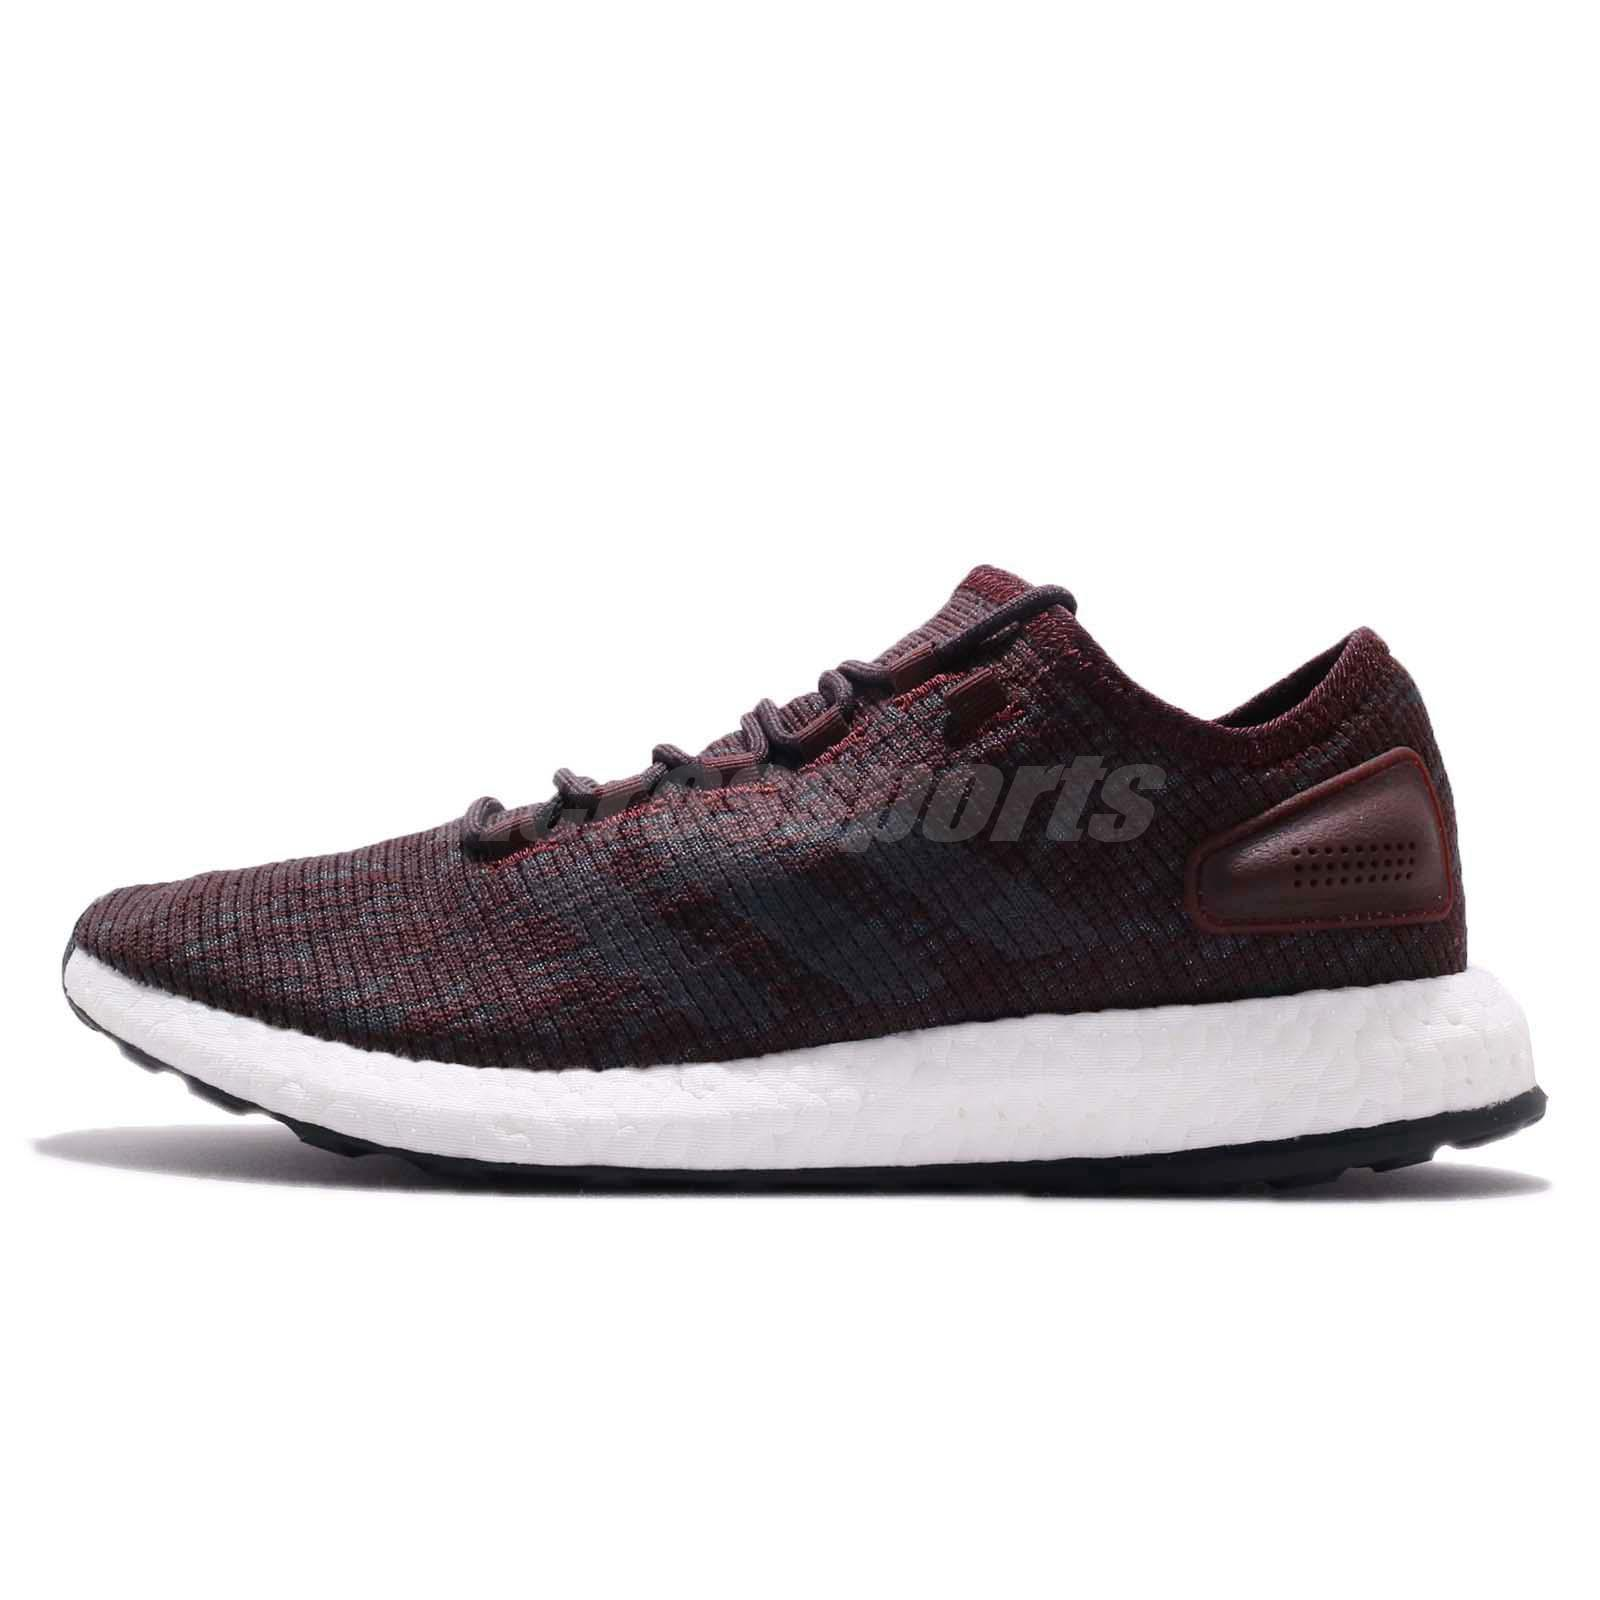 Adidas Men/'s NEW PureBoost Running Shoes Red-Black SoftFoam Training Sneakers